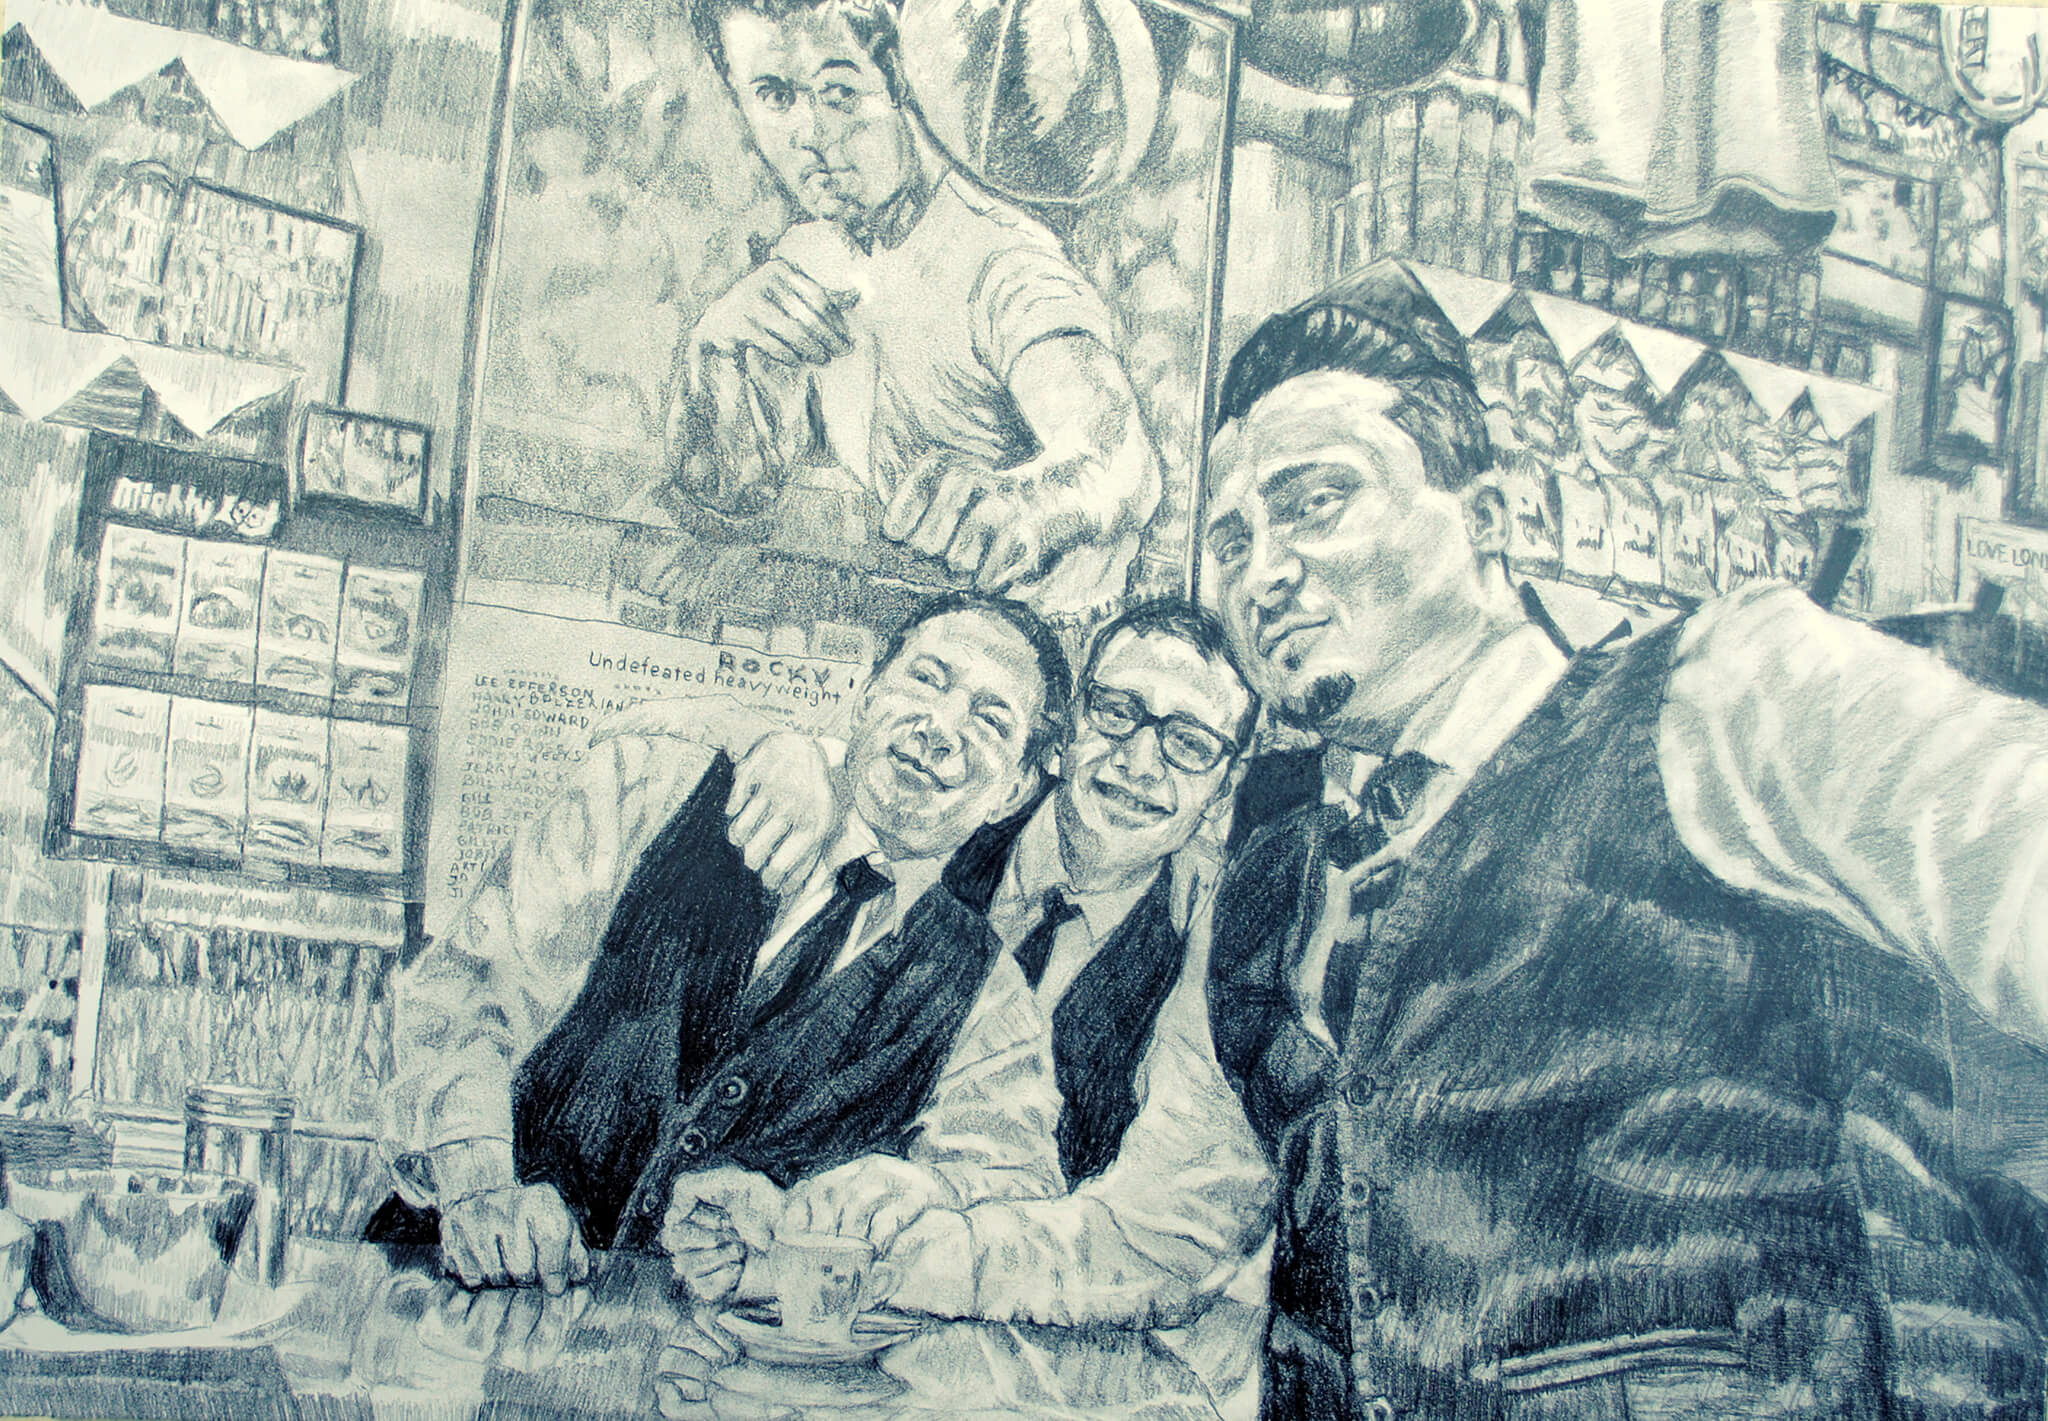 Bar Italia staff pencil on paper business portrait commission artwork by Stella Tooth